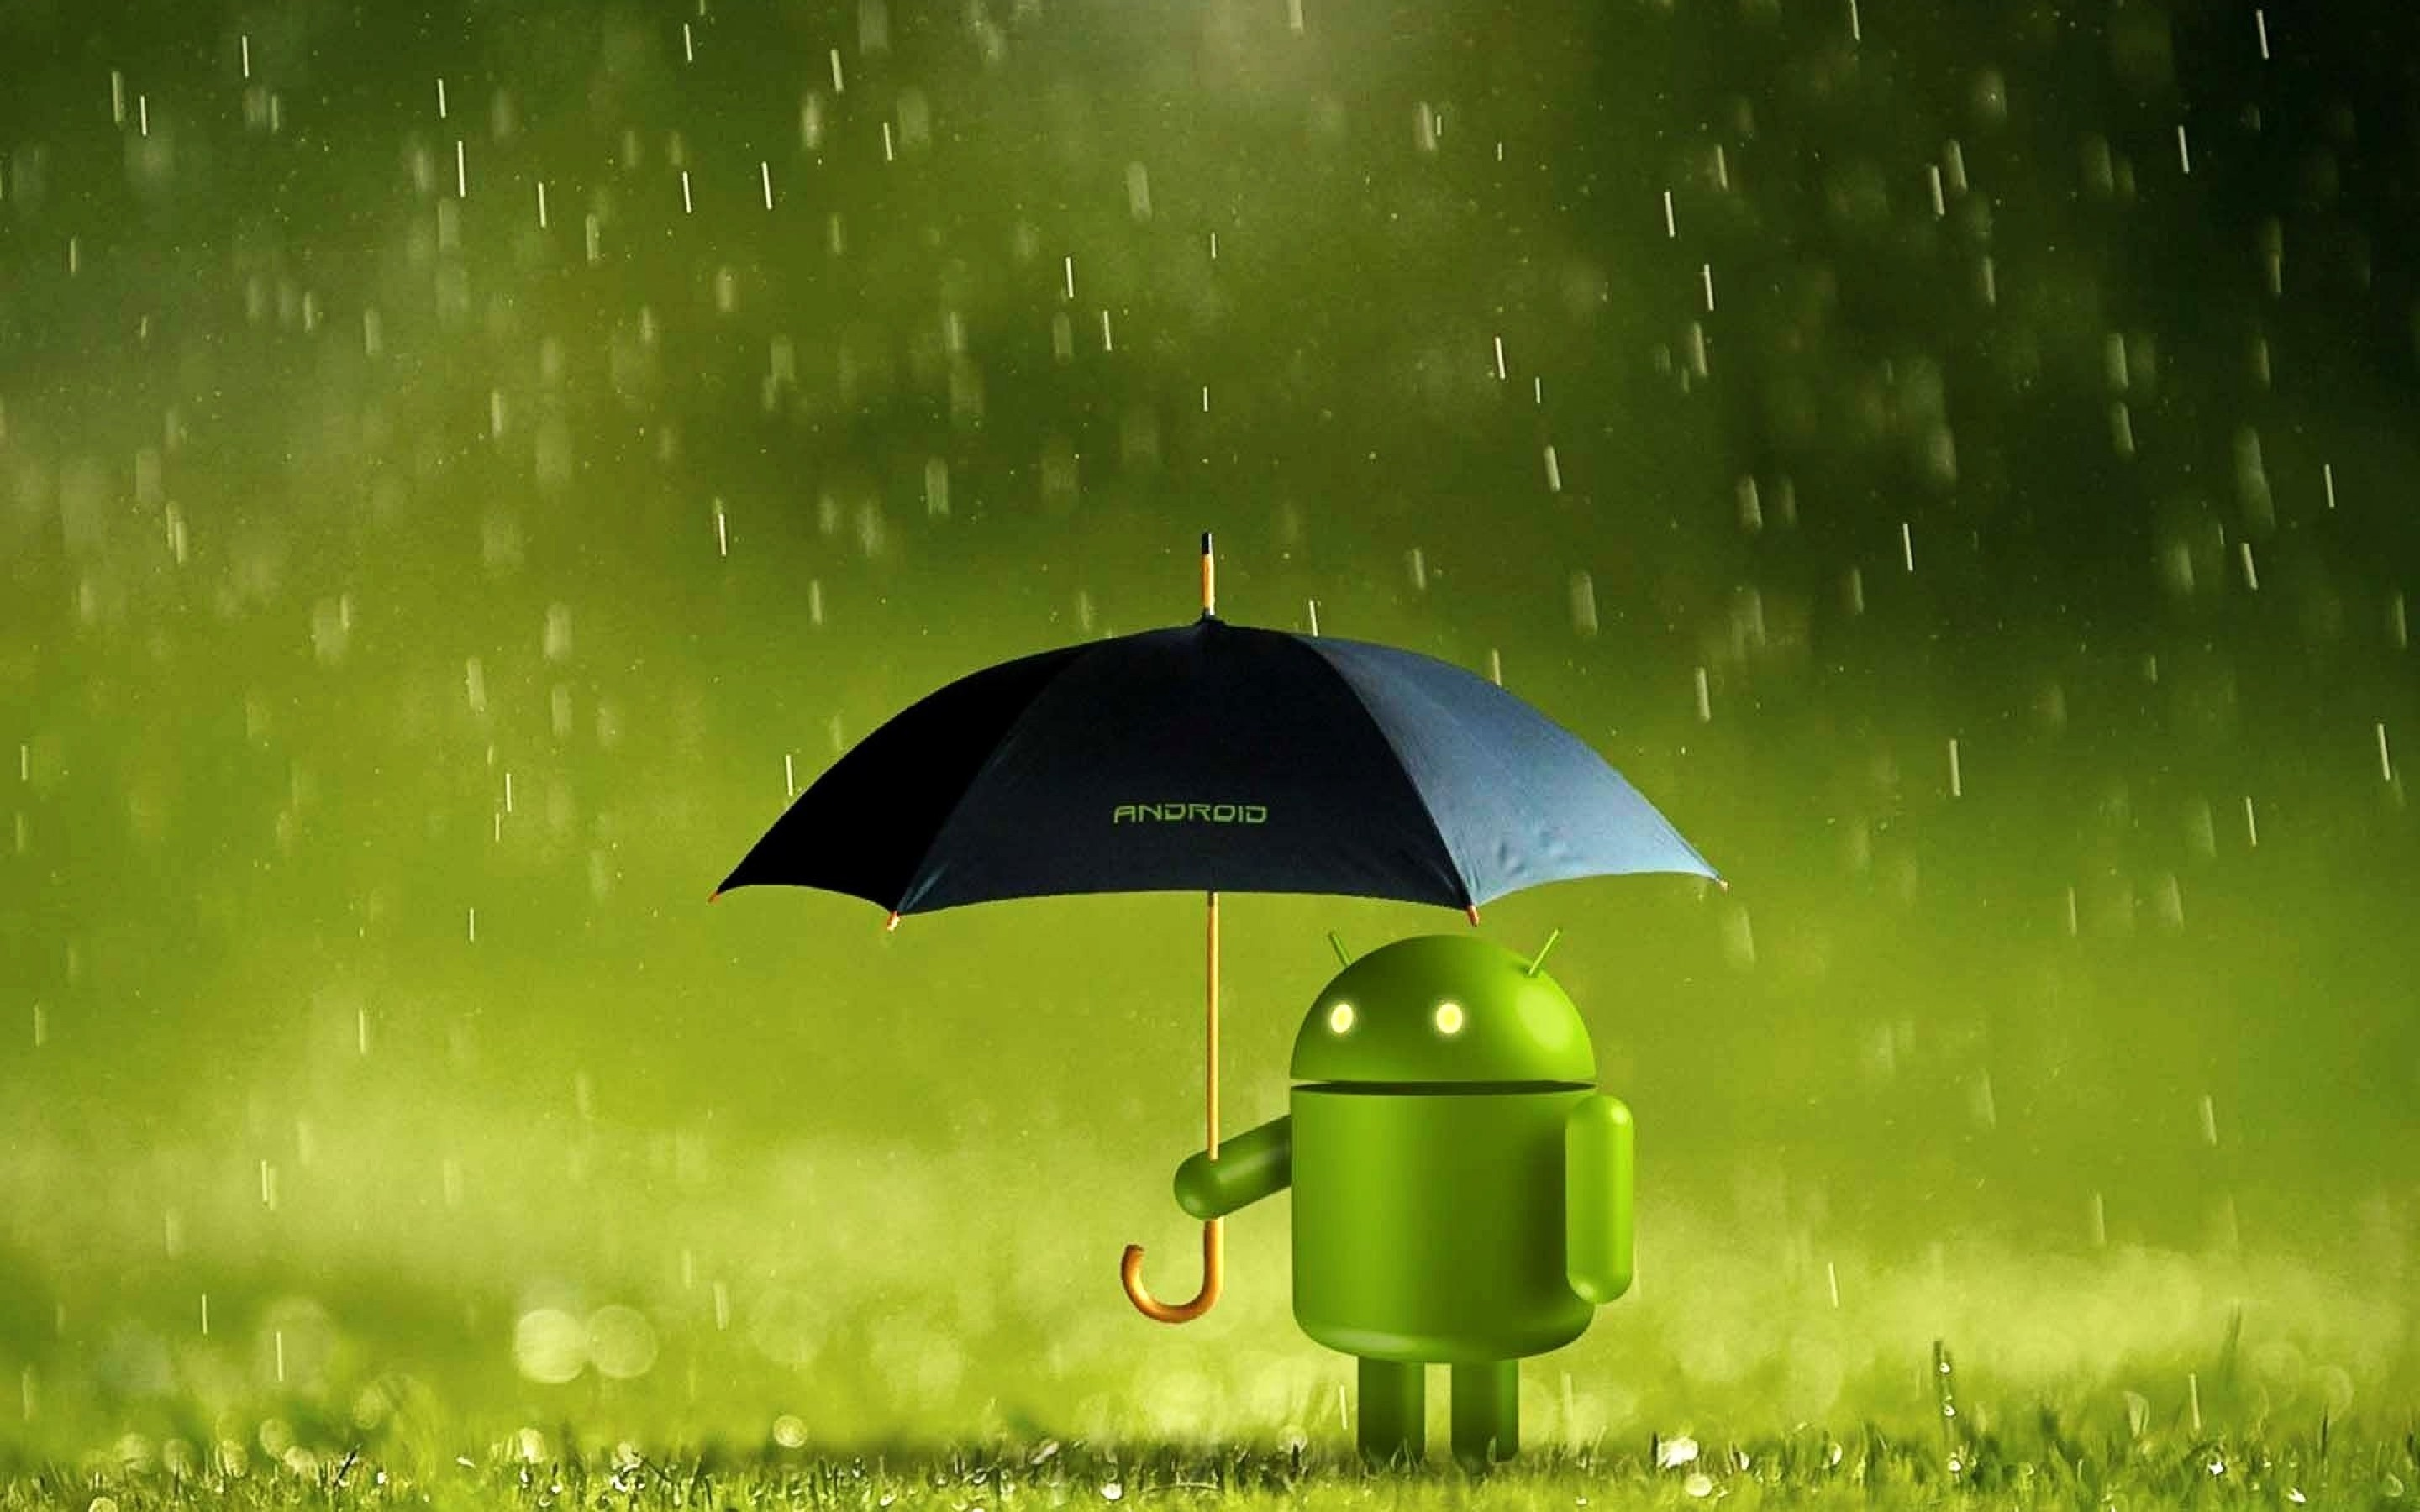 android logo hd wallpaper 04 published 20150728 at 2880 a— 1800 in the best